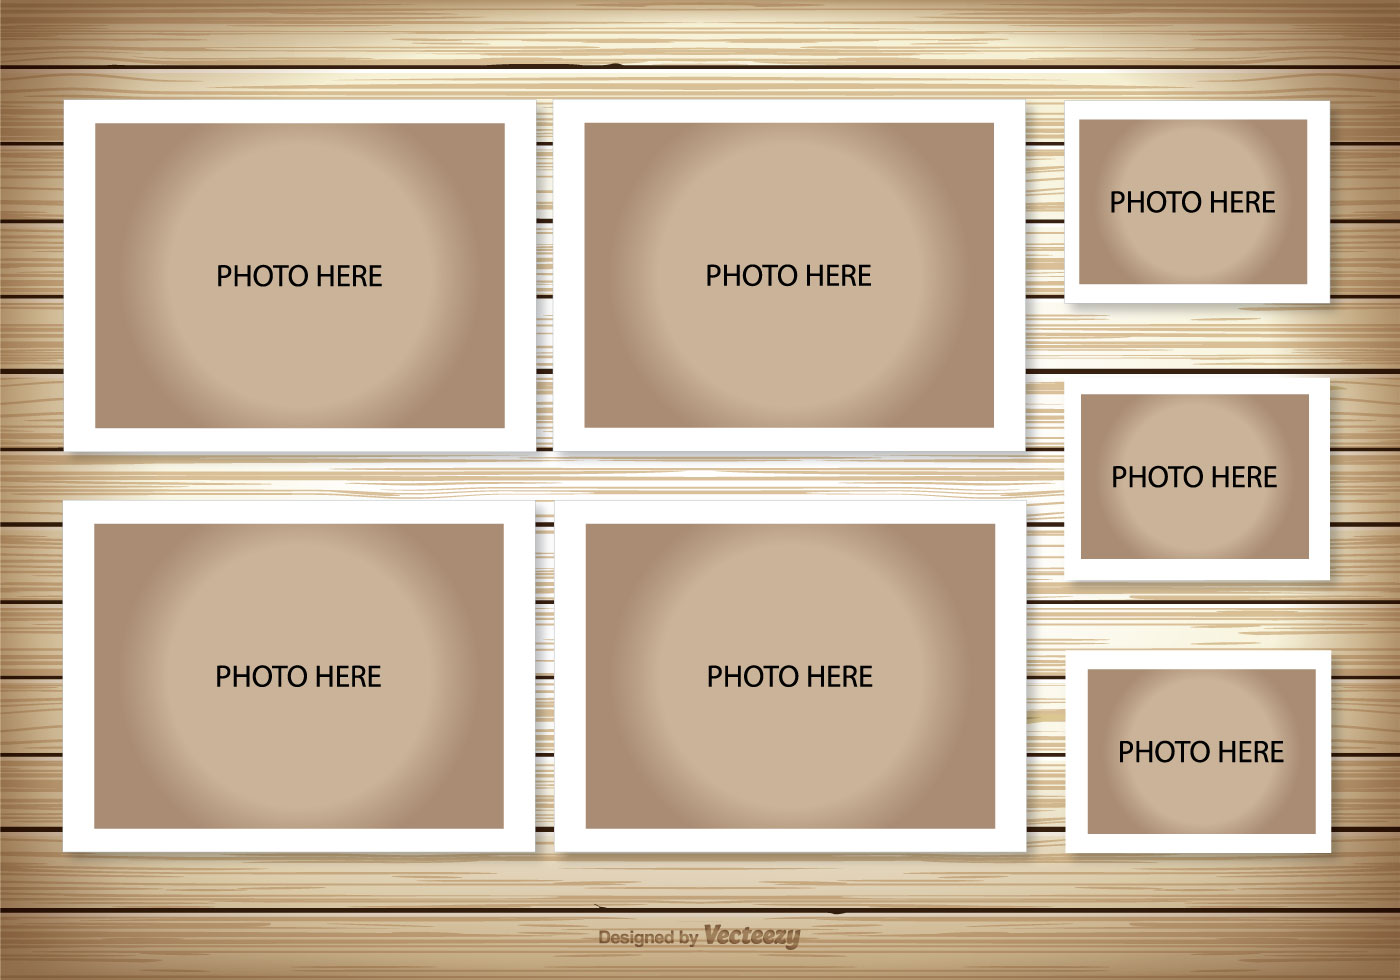 4 picture collage template - photo collage template download free vector art stock